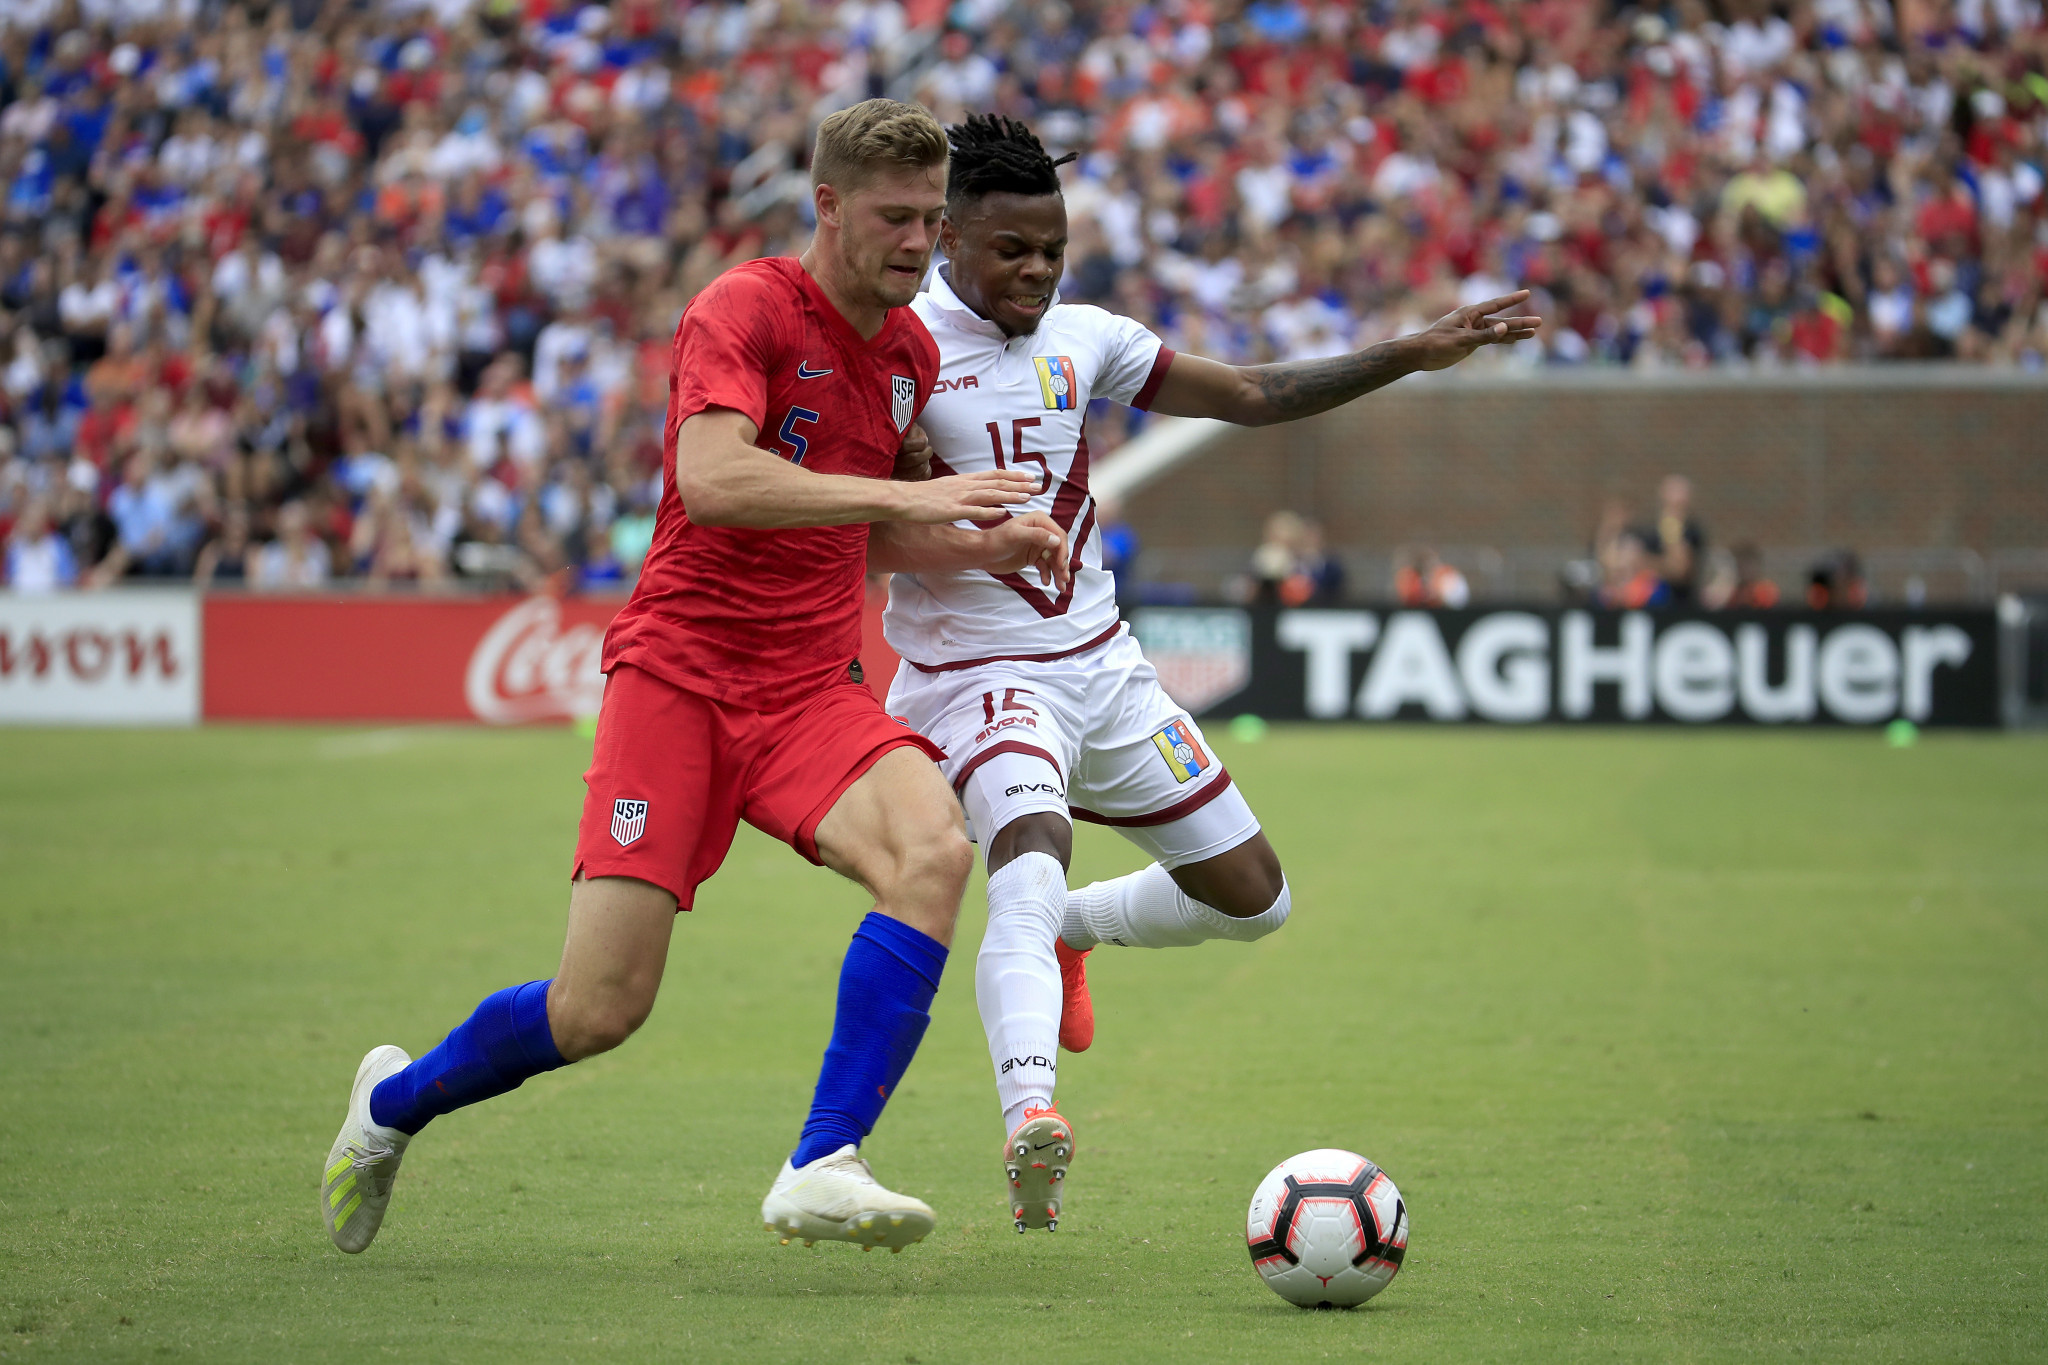 United States seeking upturn in form ahead of Gold Cup defence